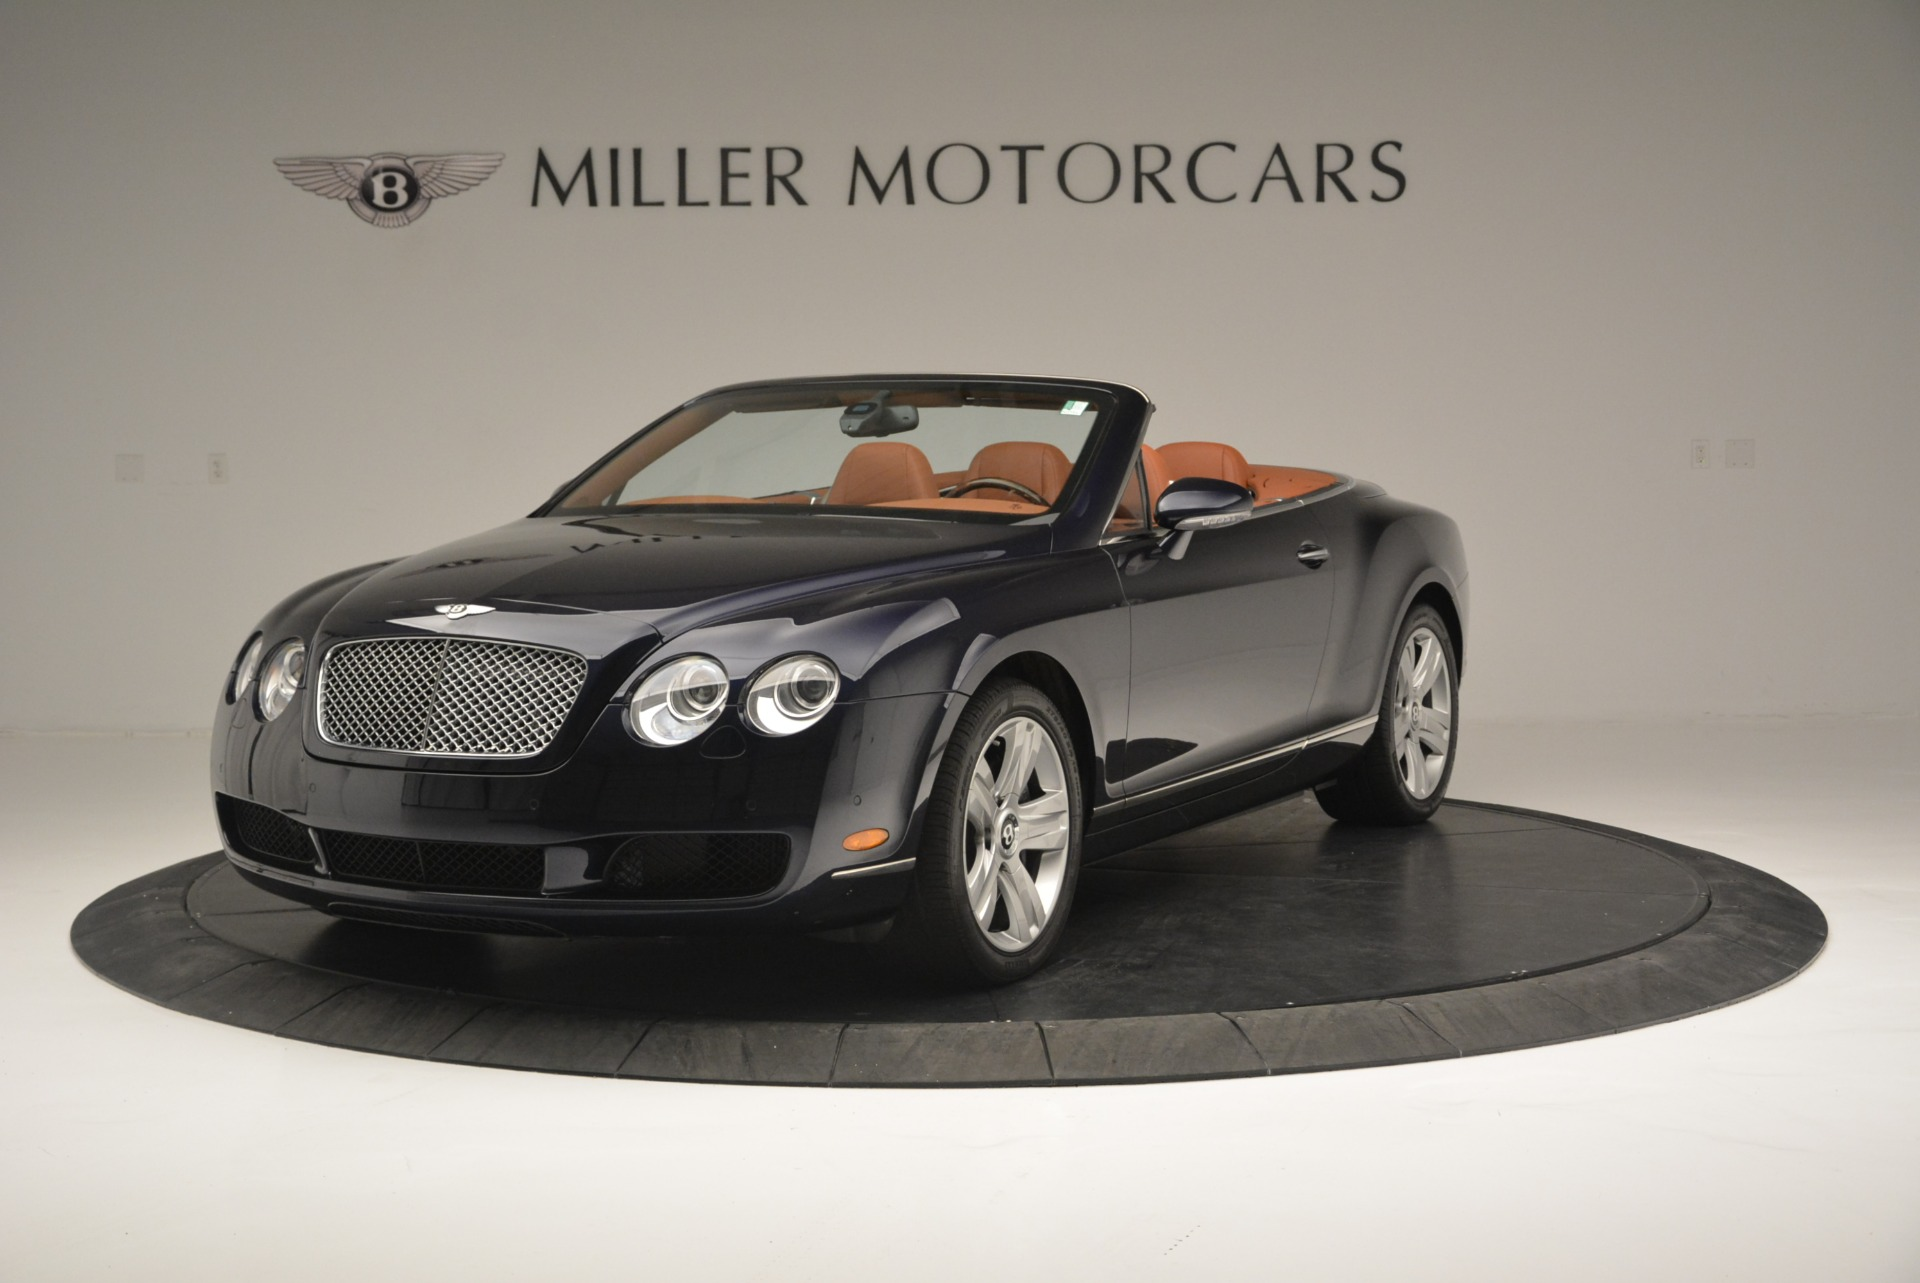 Used 2008 Bentley Continental GTC GT for sale Sold at Pagani of Greenwich in Greenwich CT 06830 1